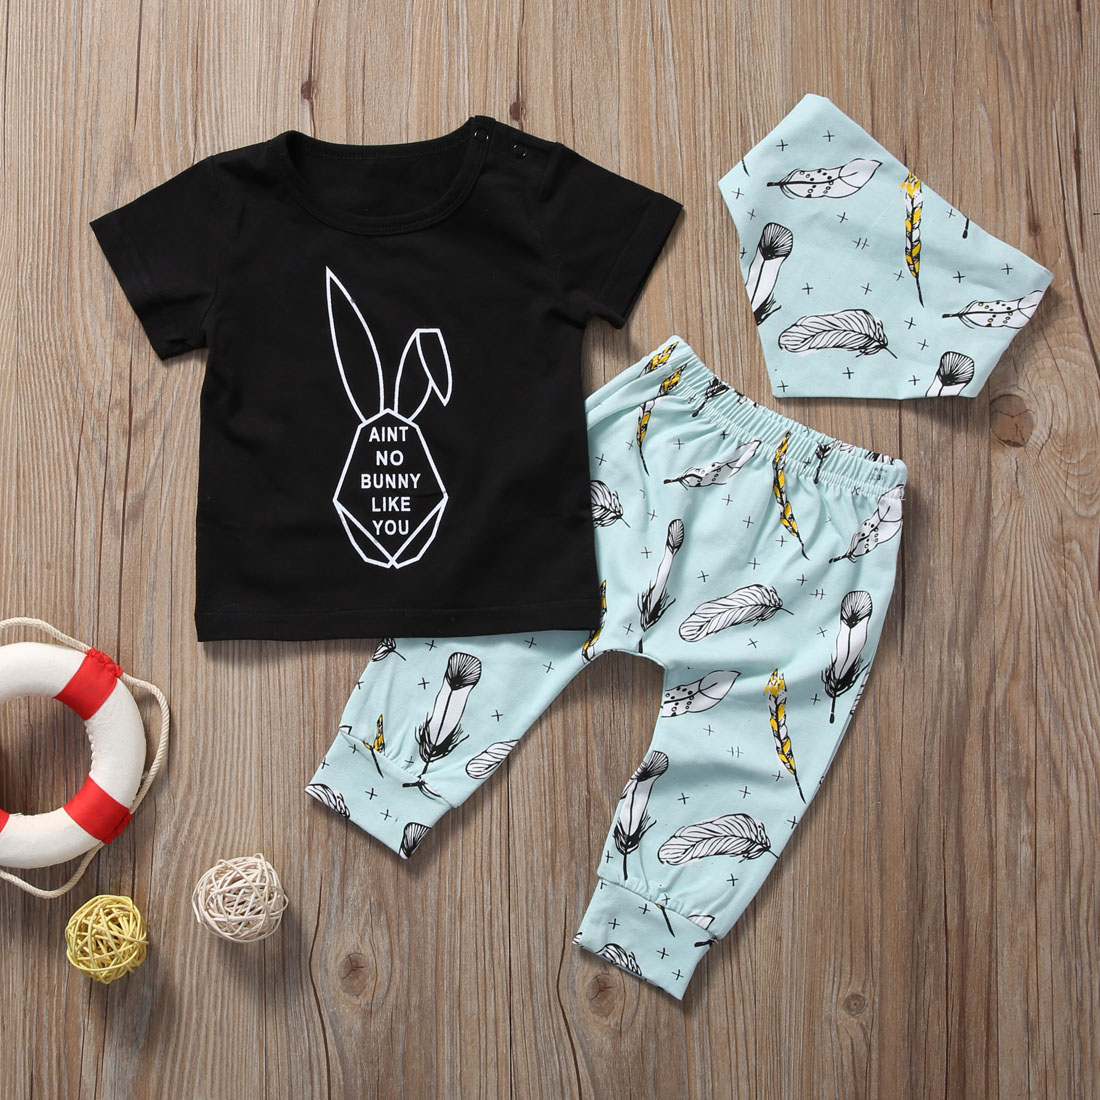 Newborn Infant Baby Boys Girls Clothes Set T-shirt Tops Short Sleeve Pants Cute Outfits Clothing Baby Boy newborn infant kids baby boy clothes set t shirt tops pants camouflage pants baby boys clothing outfits set